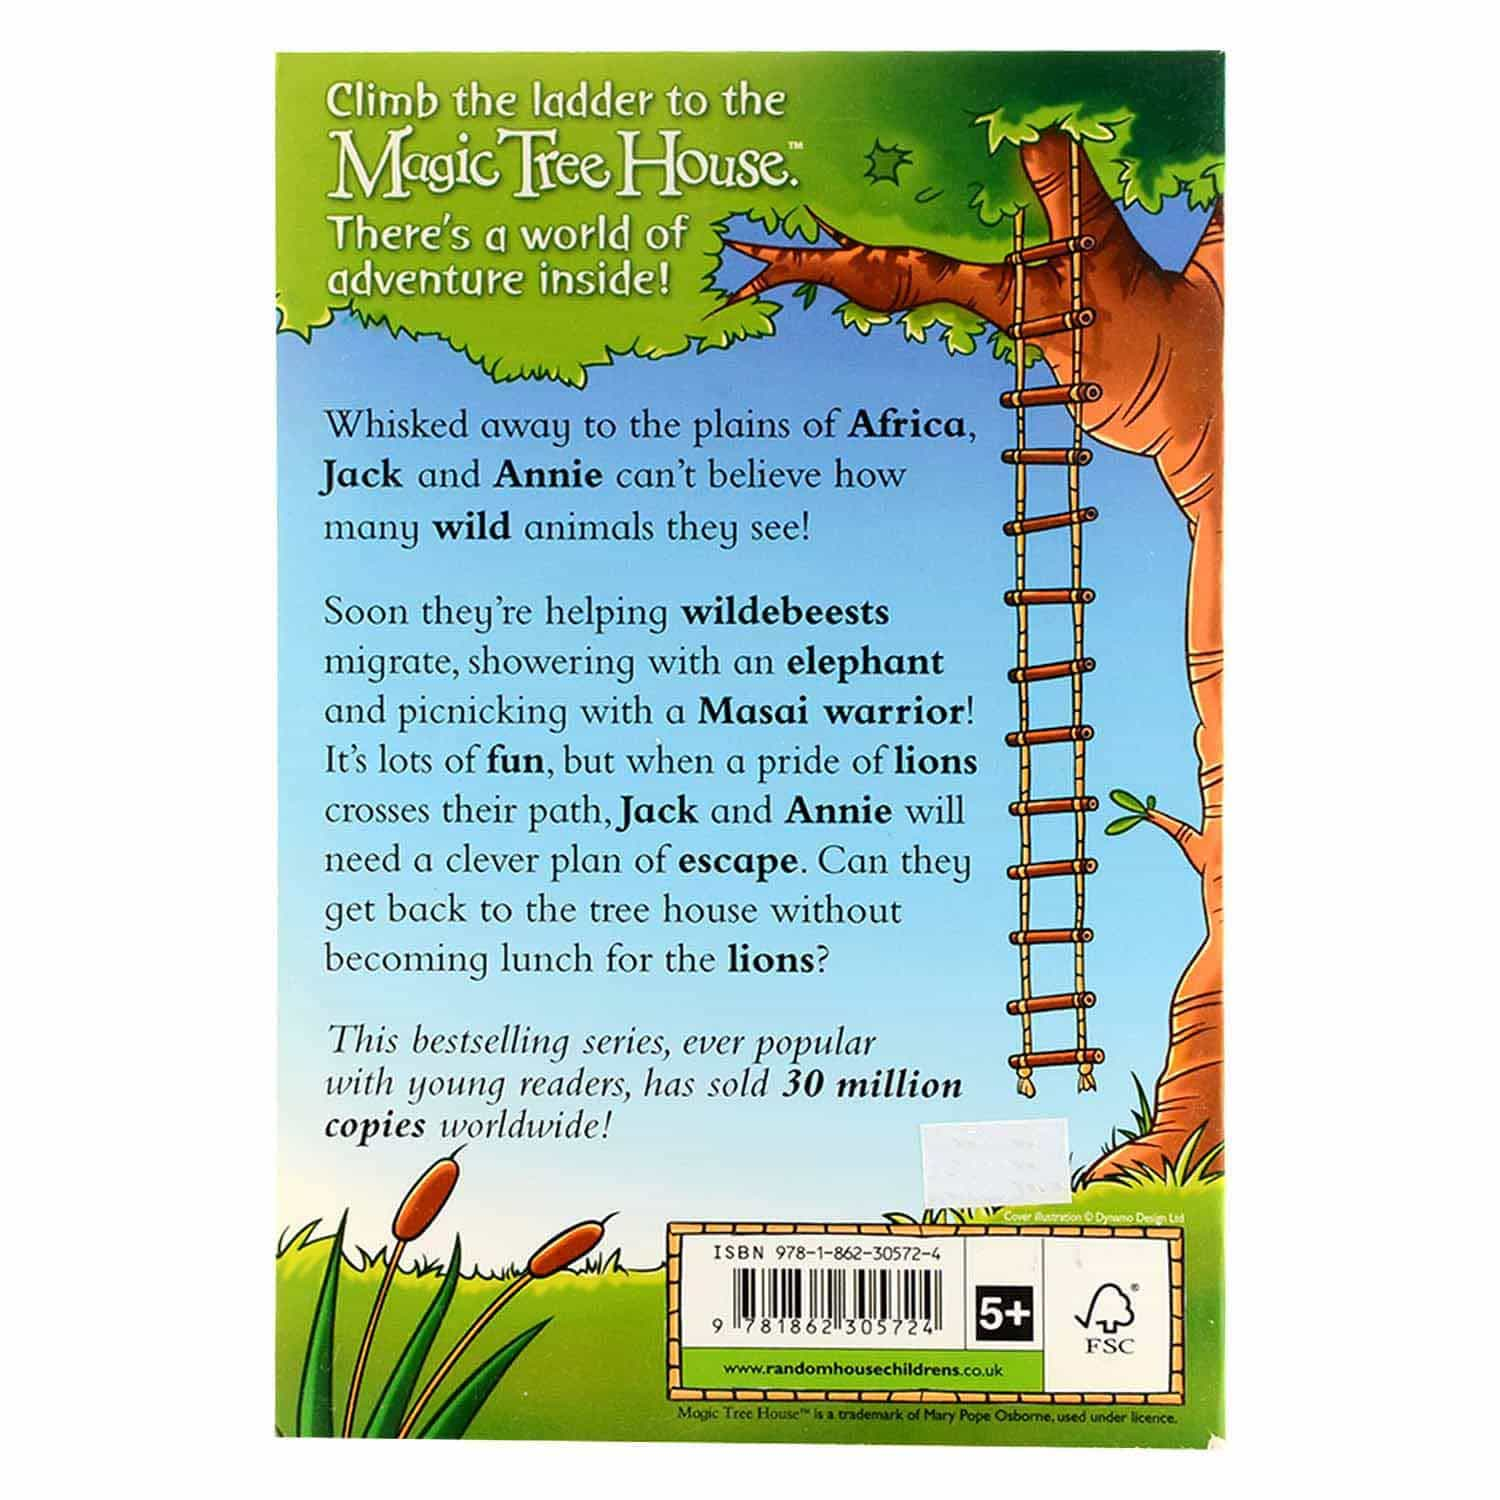 Magic Tree House Series - Lions on the Loose